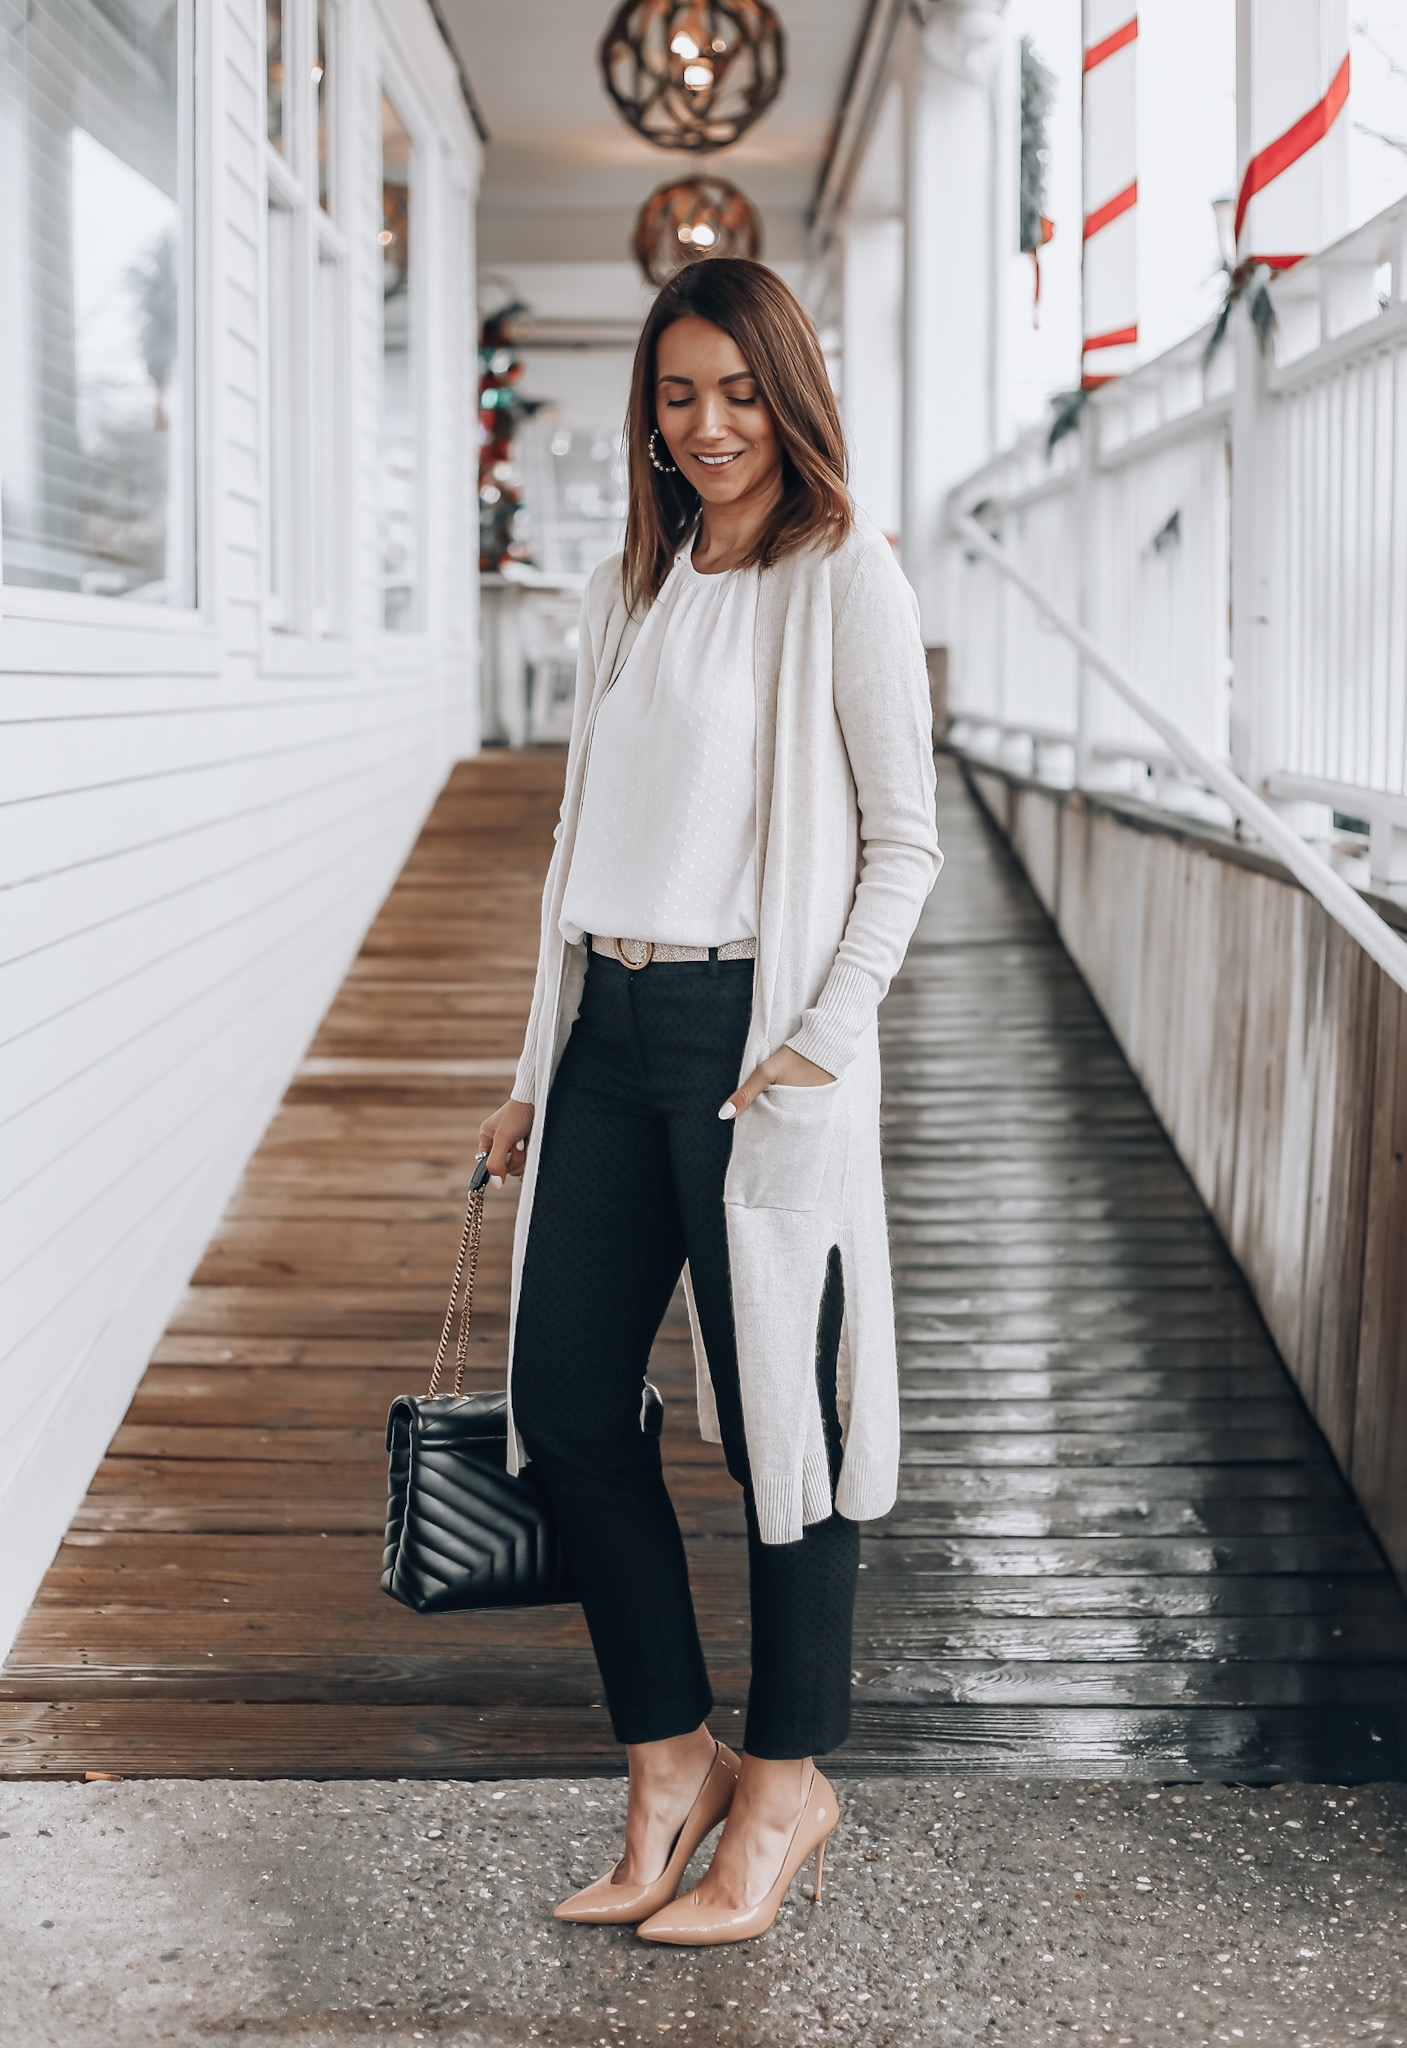 workwear outfit idea